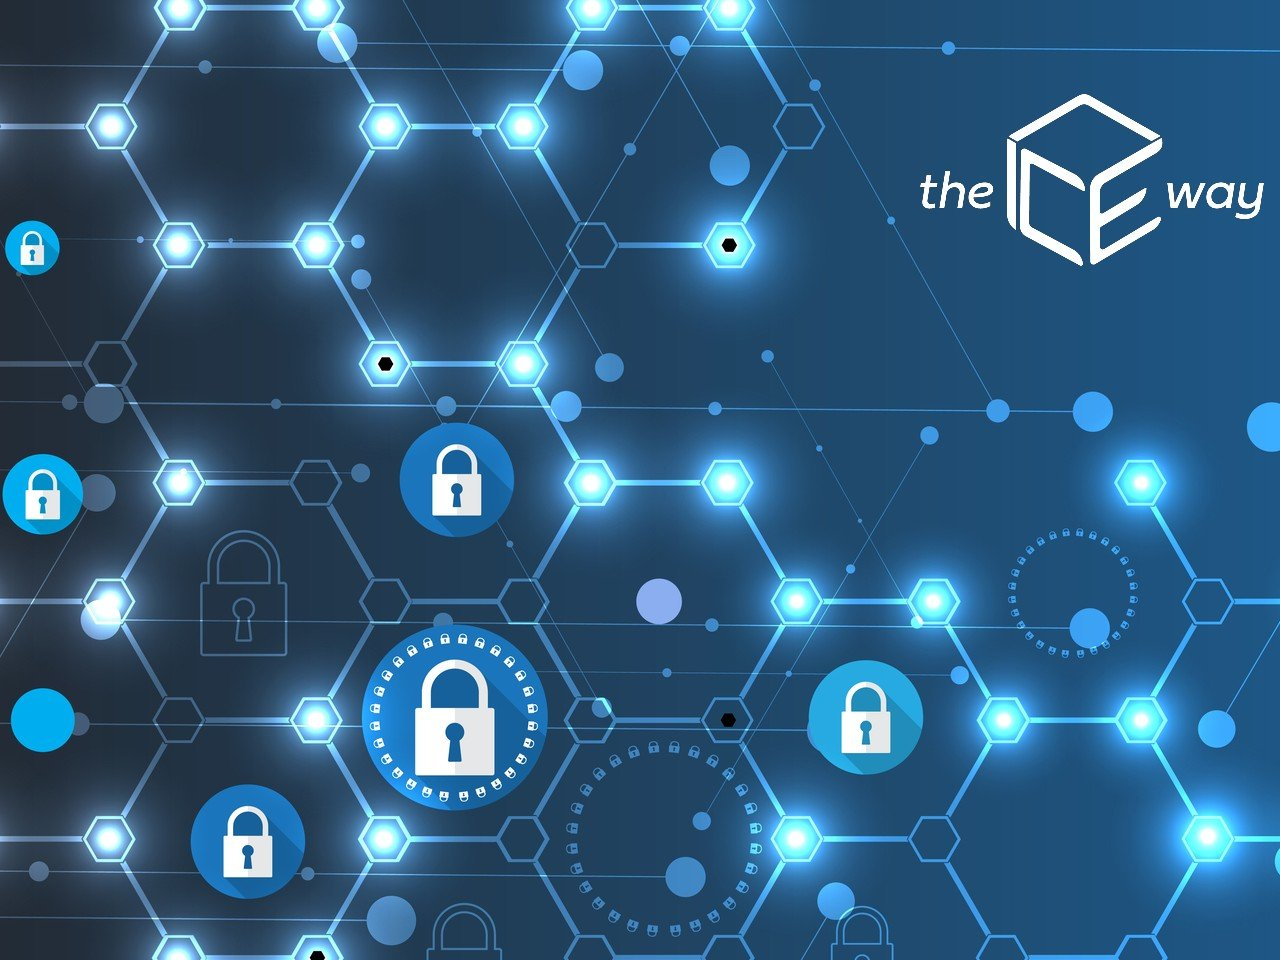 Cybersecurity & security by design from theICEway